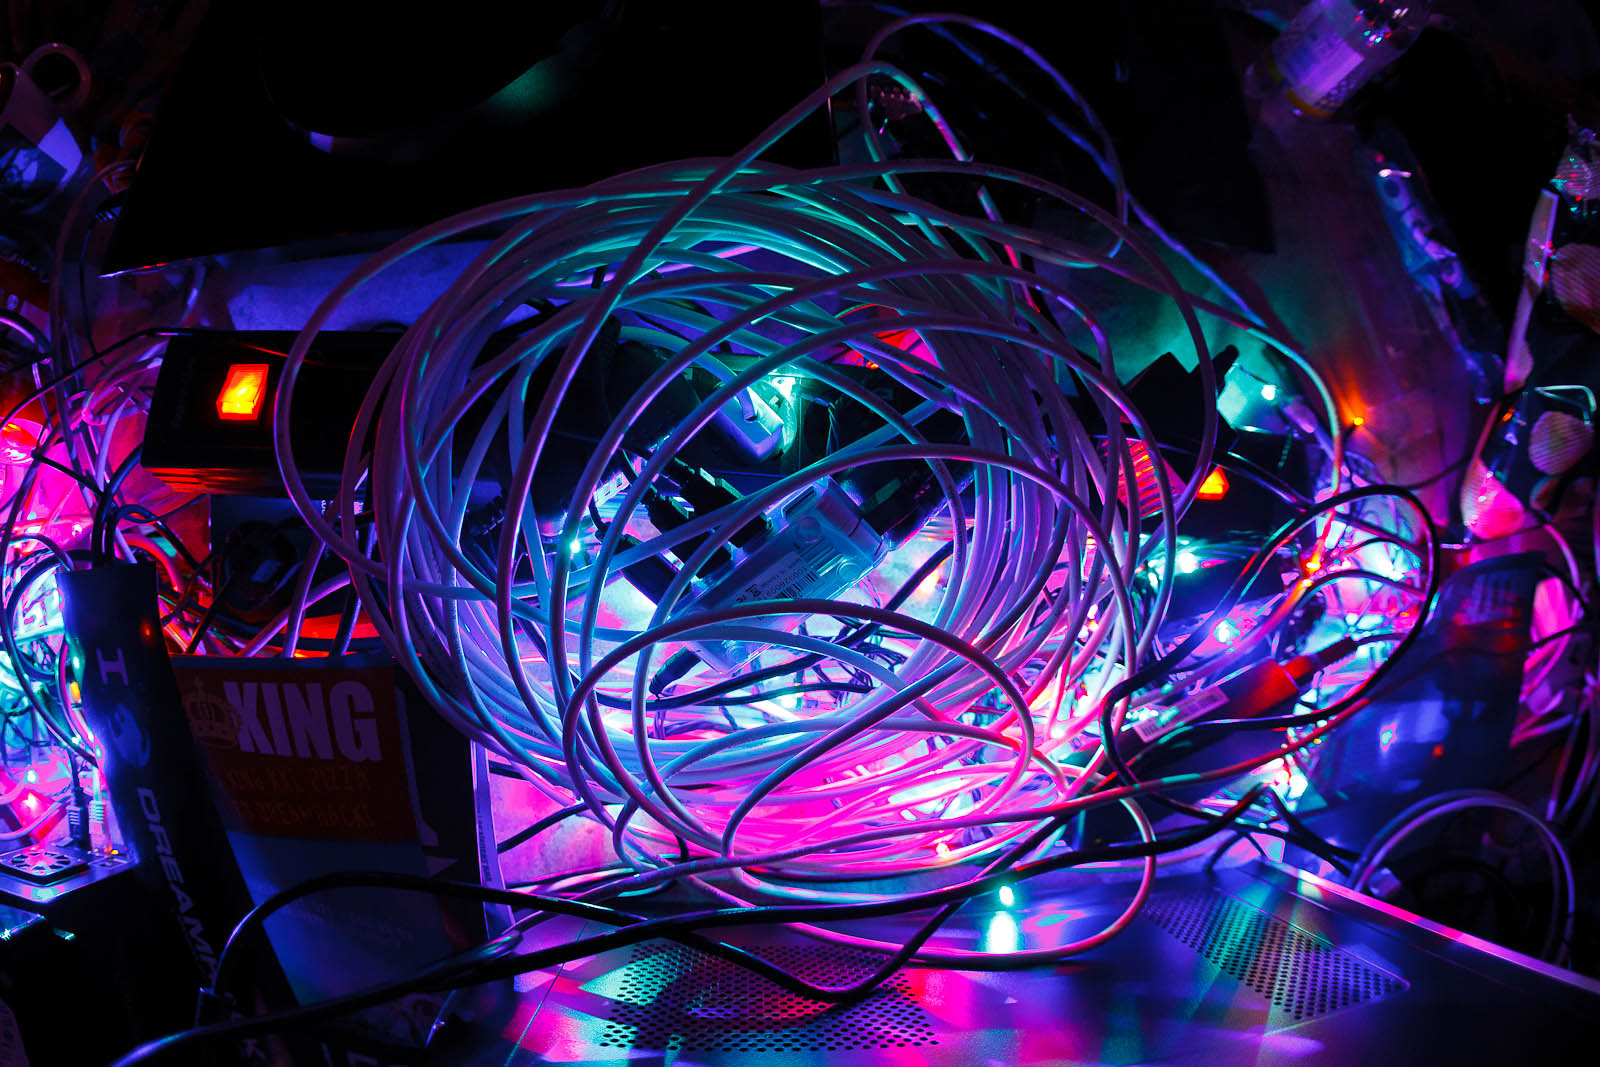 Bundle of wires and lights